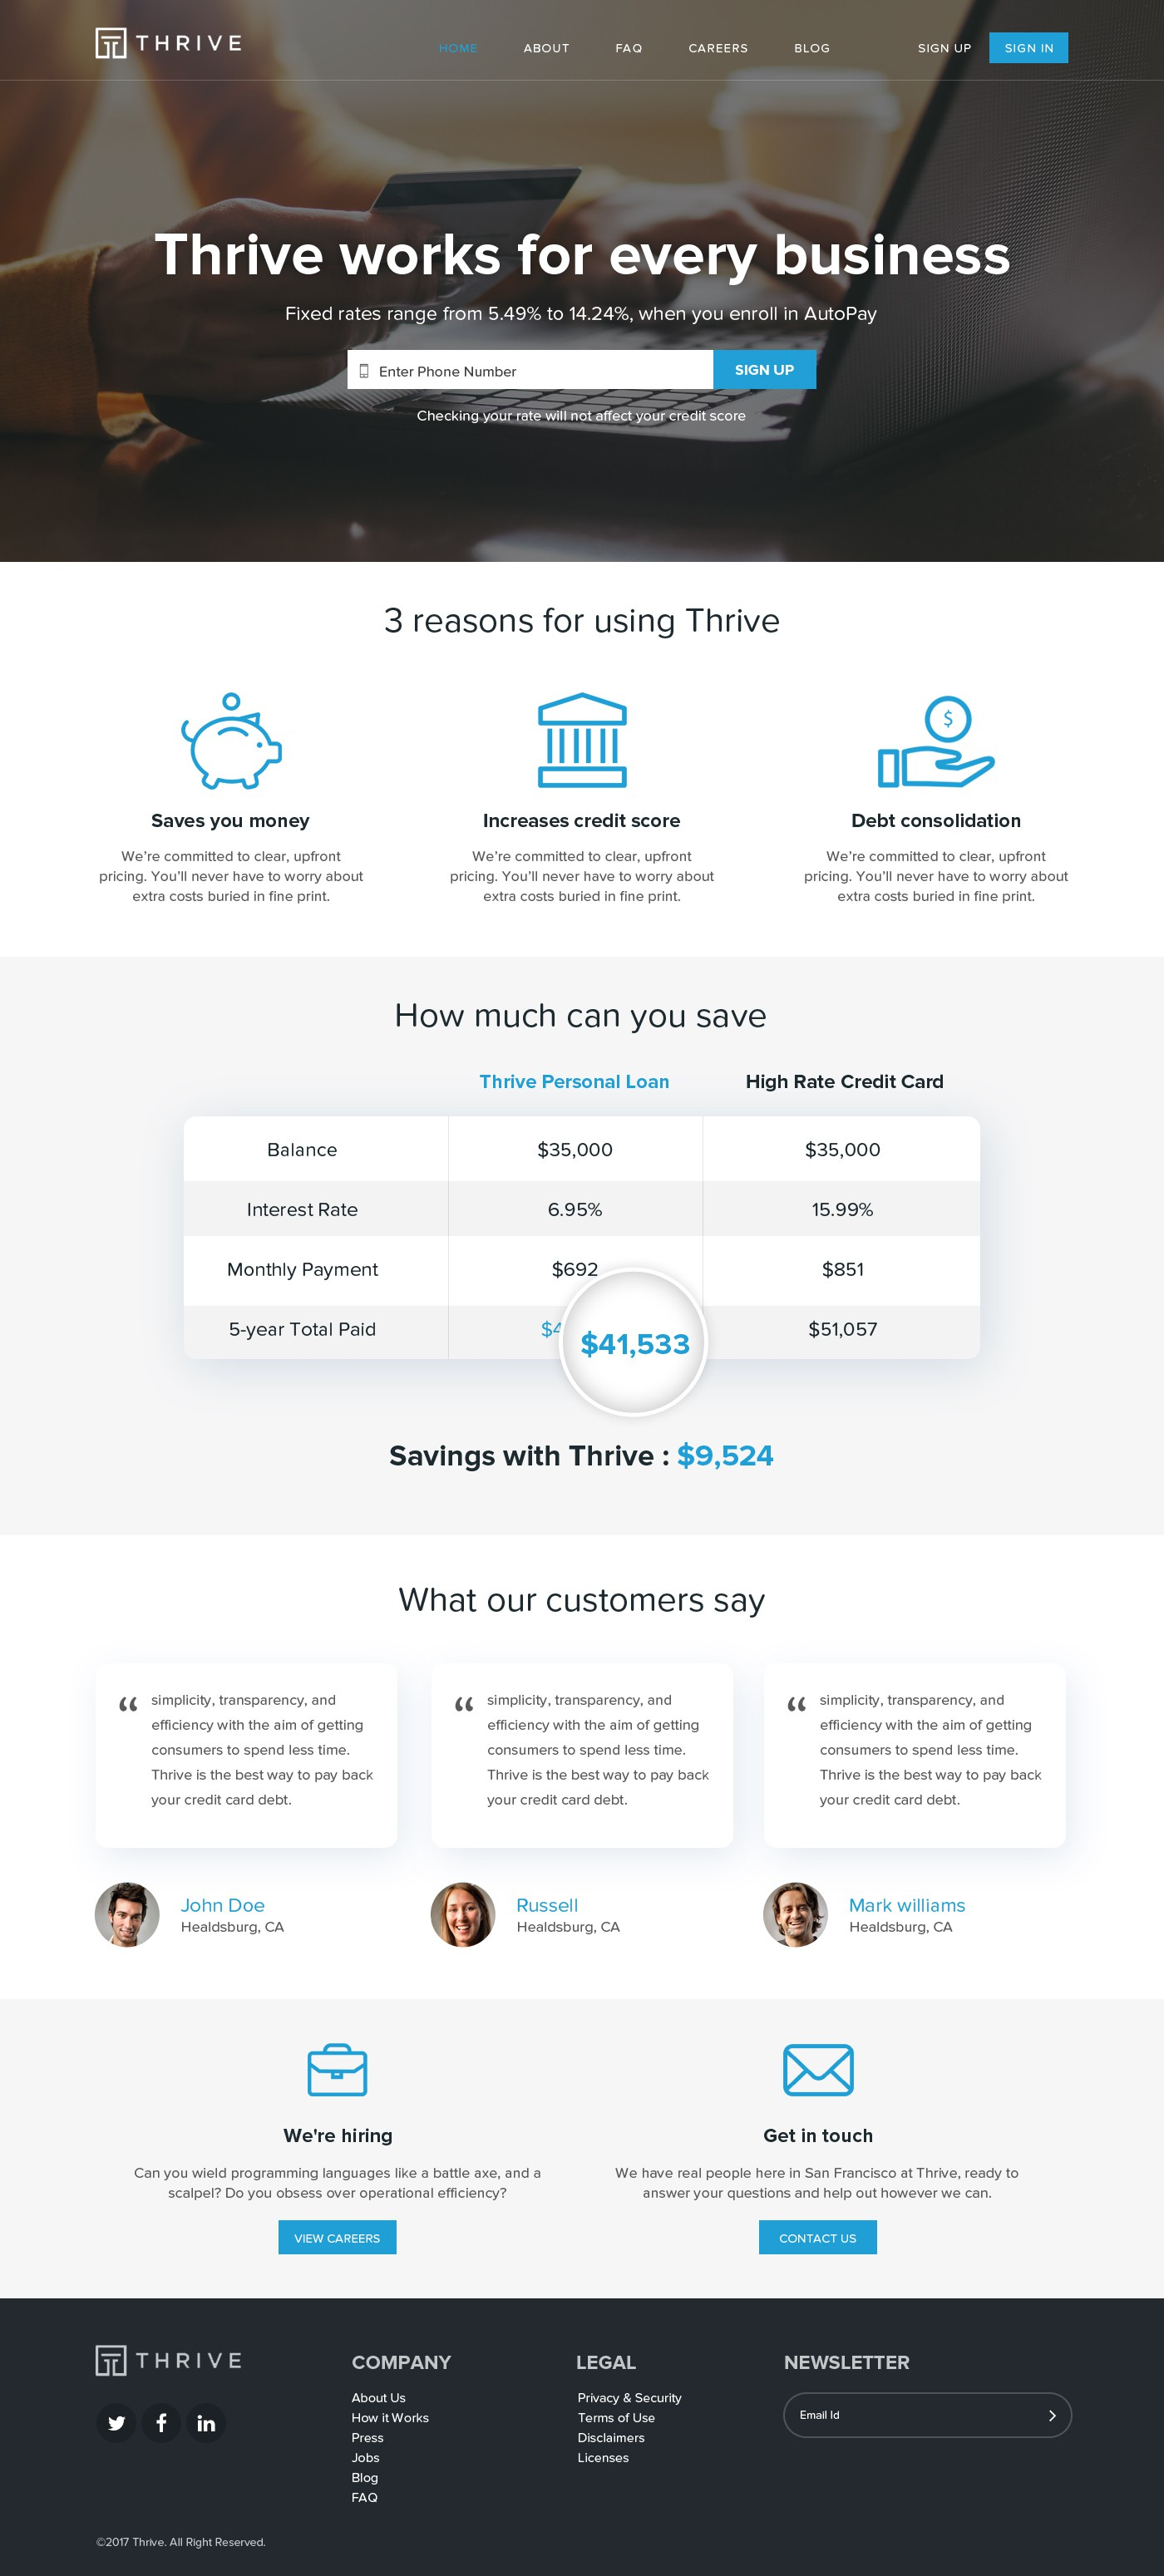 Design a sleek landing page for a next generation bank that millions will use